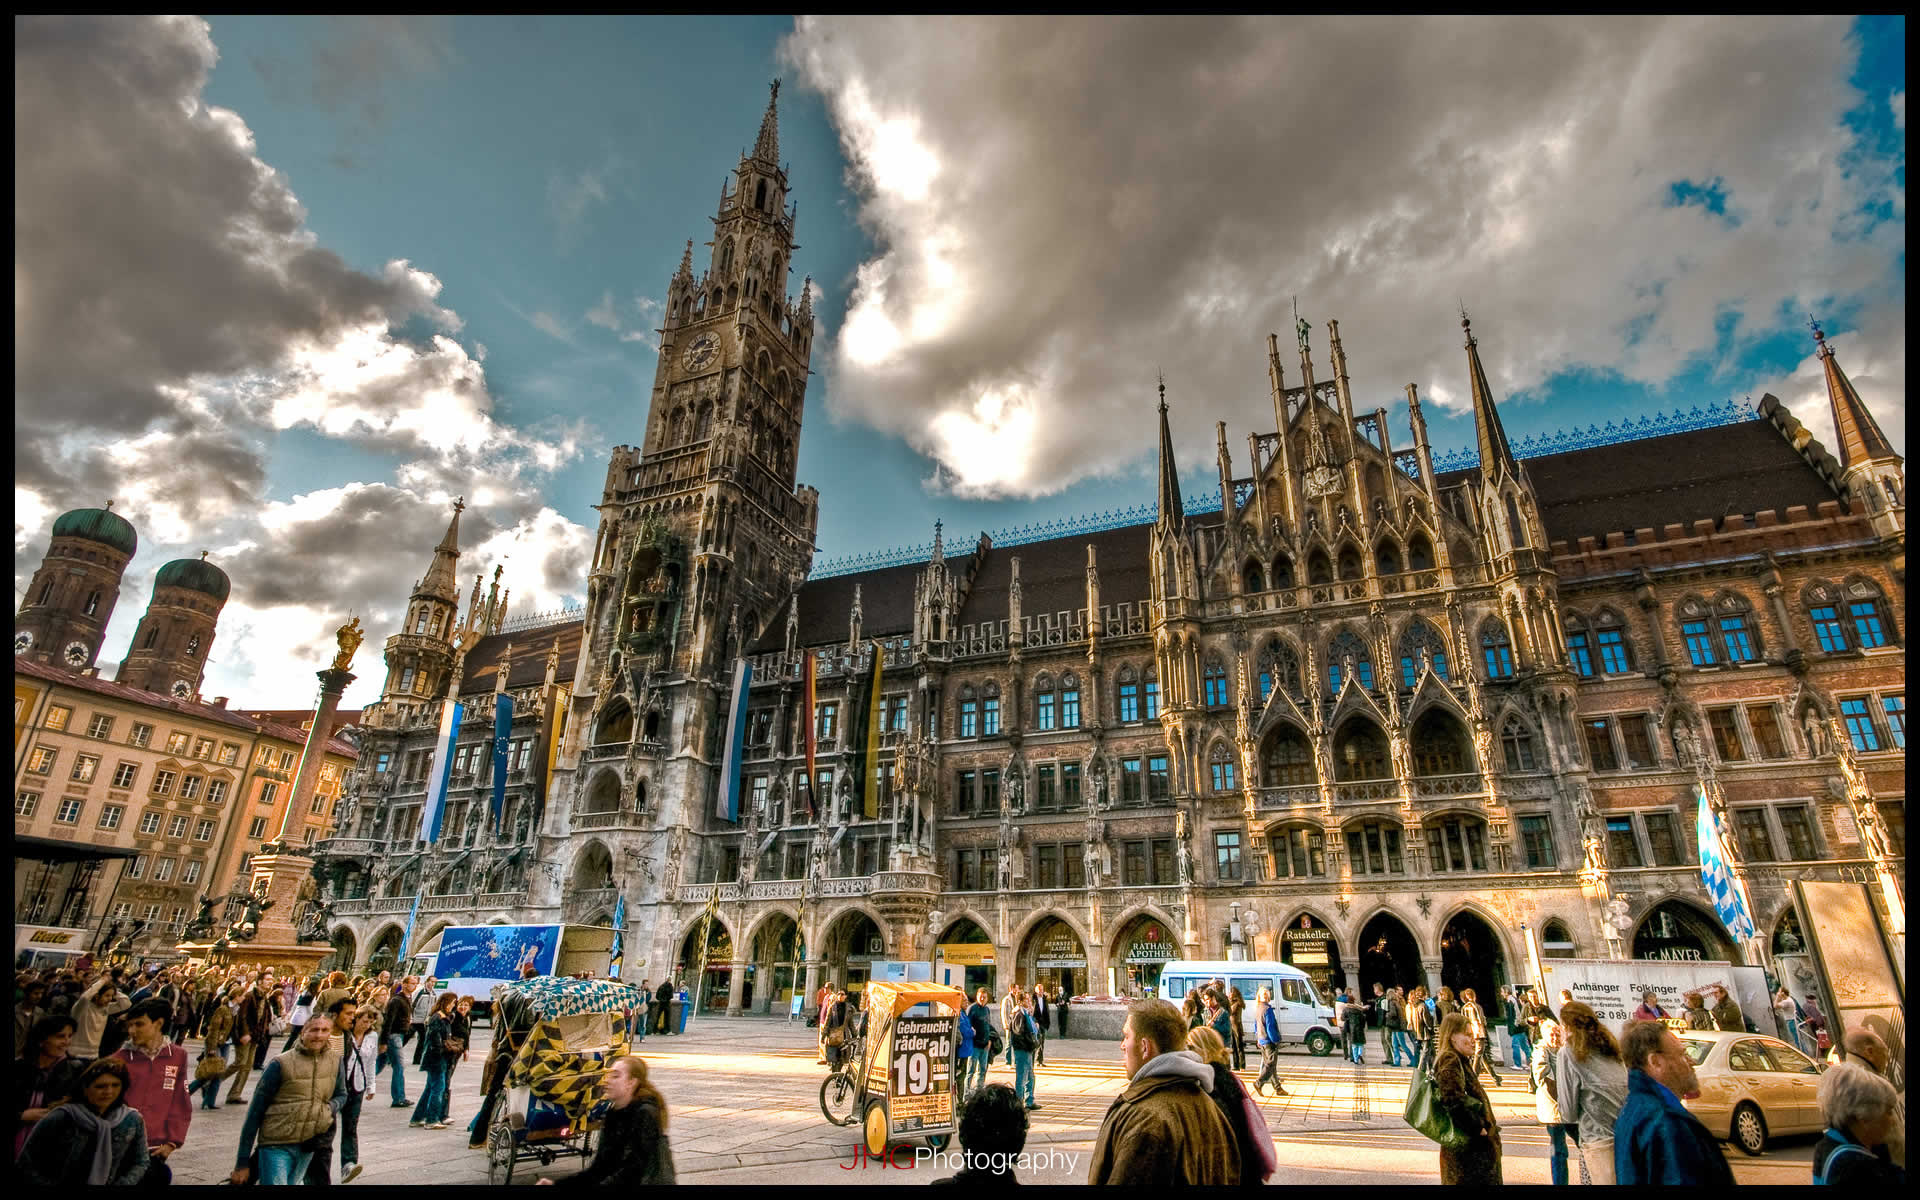 Munich (German: München, pronounced [ˈmʏnçən] ( listen); Austro-Bavarian: Minga) is the capital city of Bavaria (Bayern), Germany.